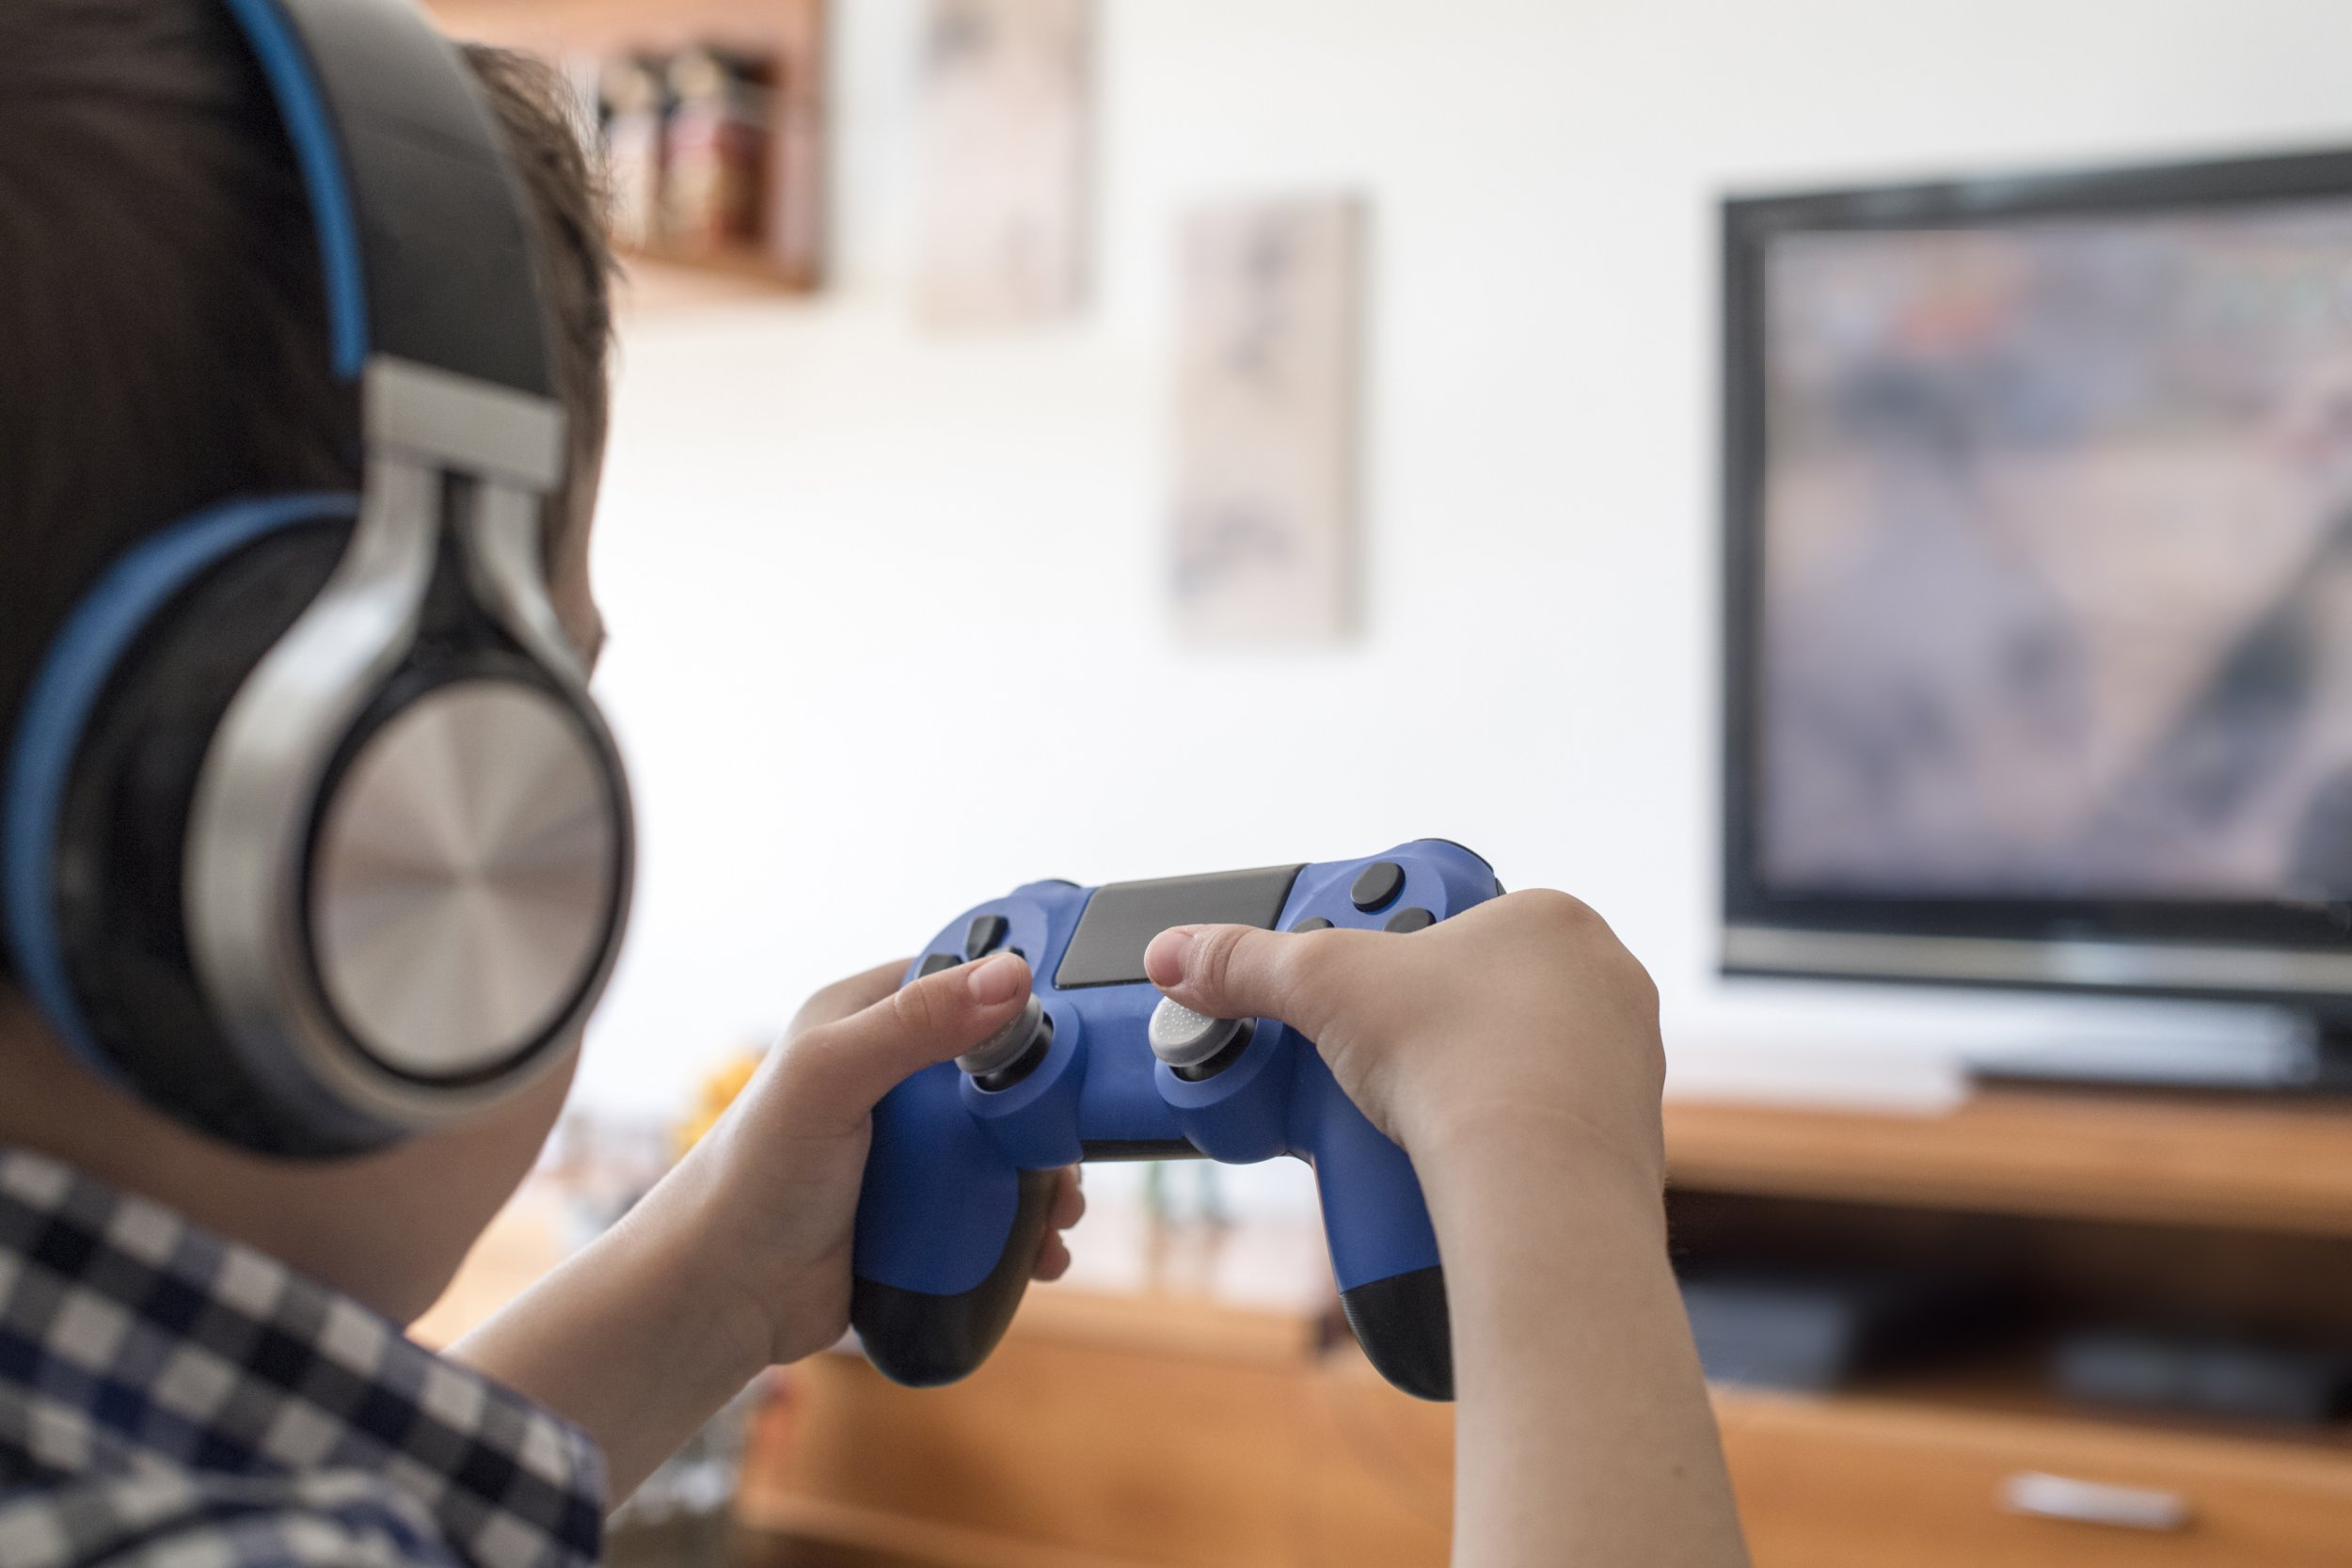 Boy Playing on console with videogames joystick at home